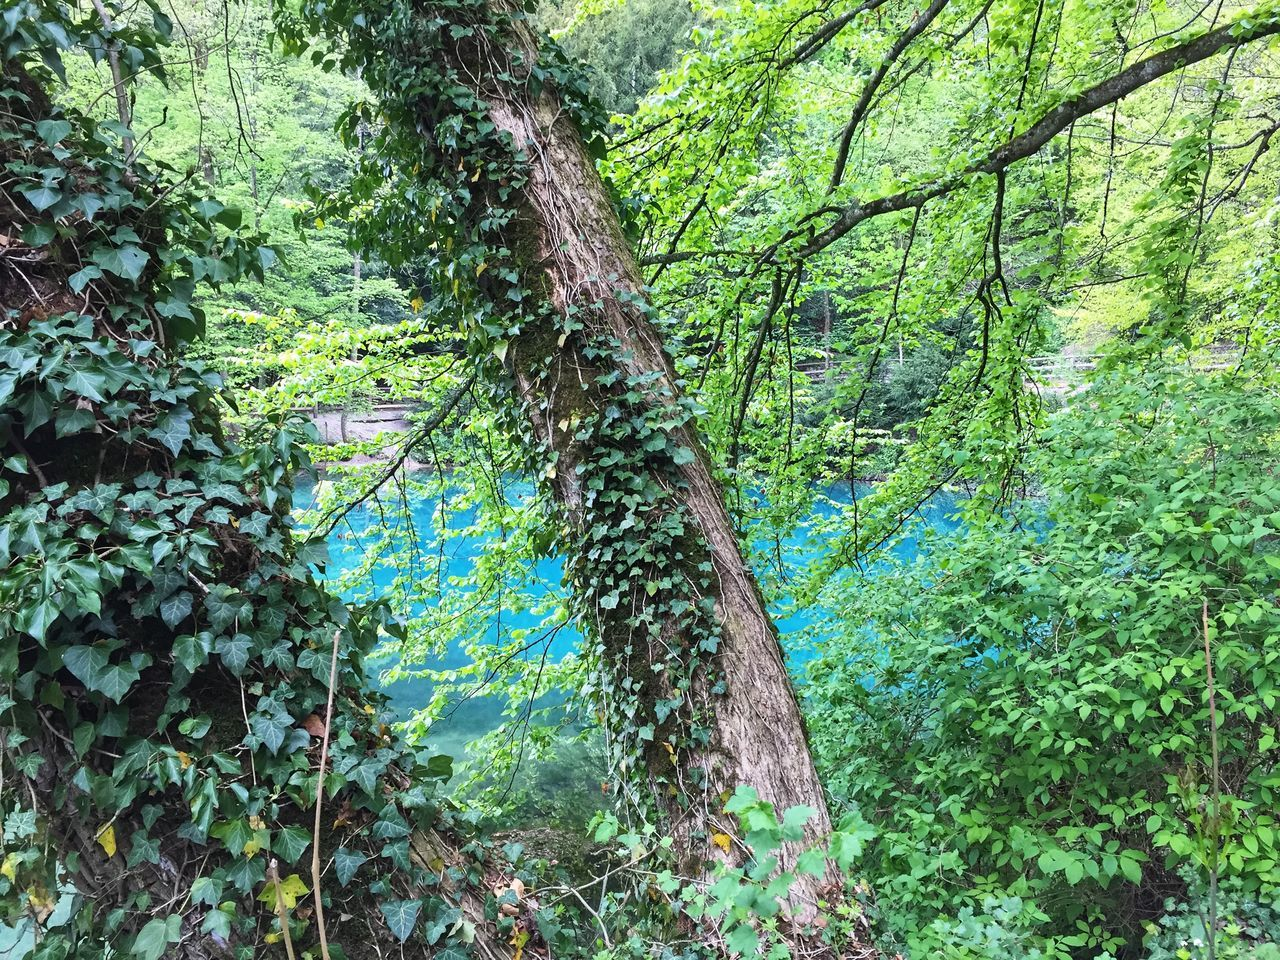 plant, tree, forest, growth, green color, land, beauty in nature, tranquility, nature, trunk, tree trunk, day, lush foliage, foliage, no people, woodland, outdoors, tranquil scene, non-urban scene, branch, rainforest, bamboo - plant